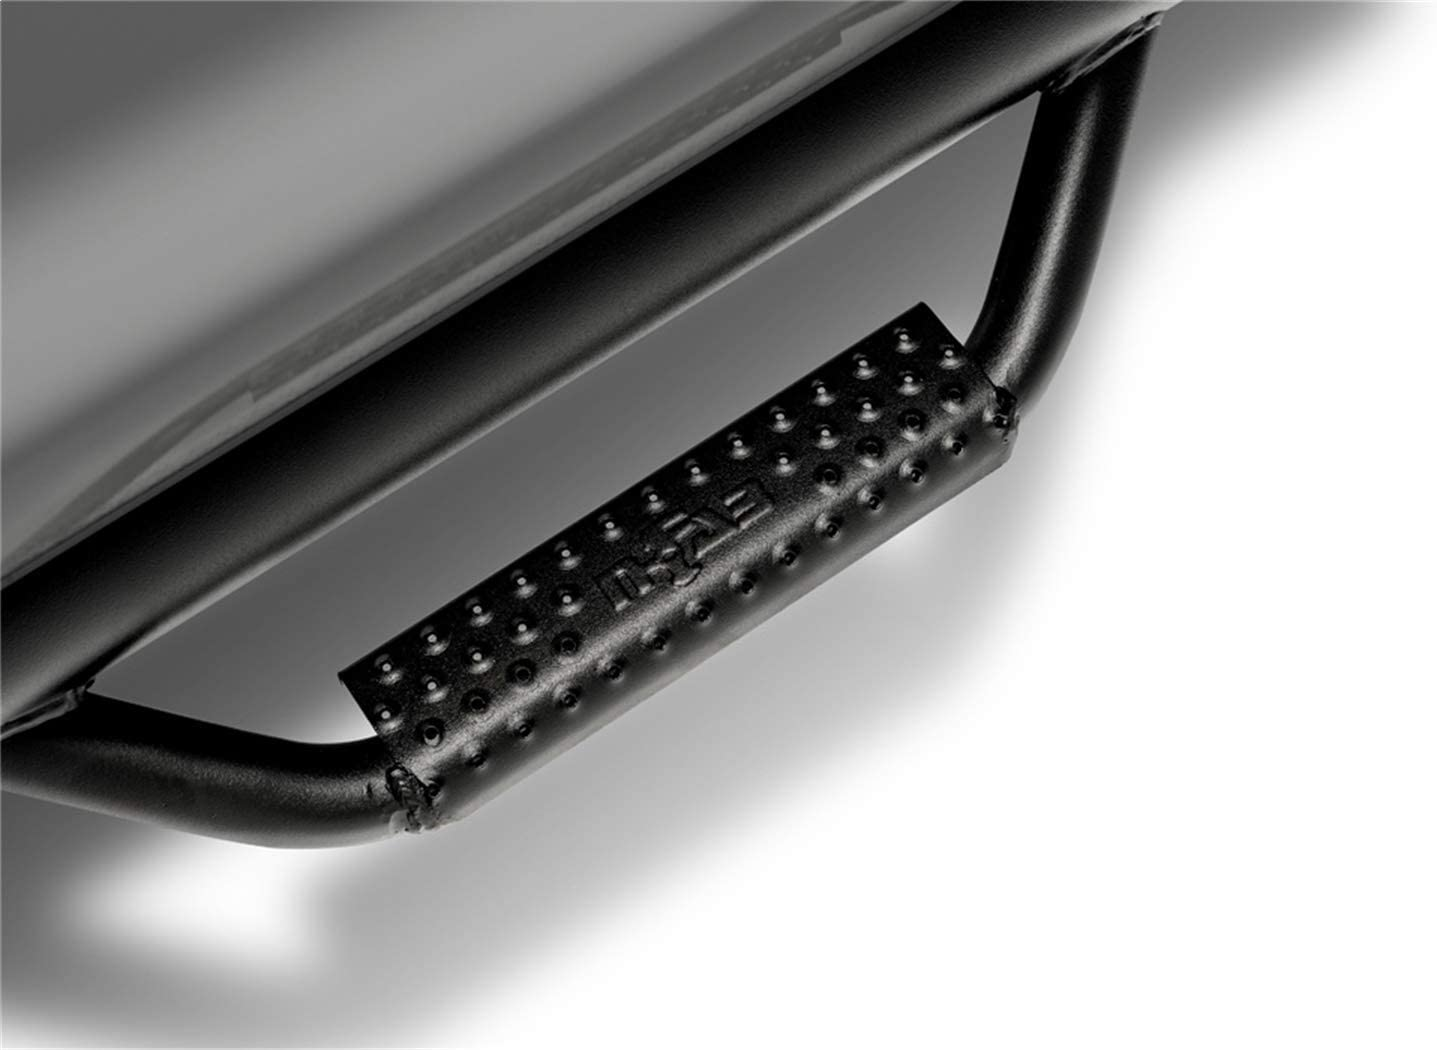 N-FAB C9973QC-TX Textured Black Nerf Step; Cab Length Chevy-GMC 2500 3500 Extended Cab All Beds 99-06